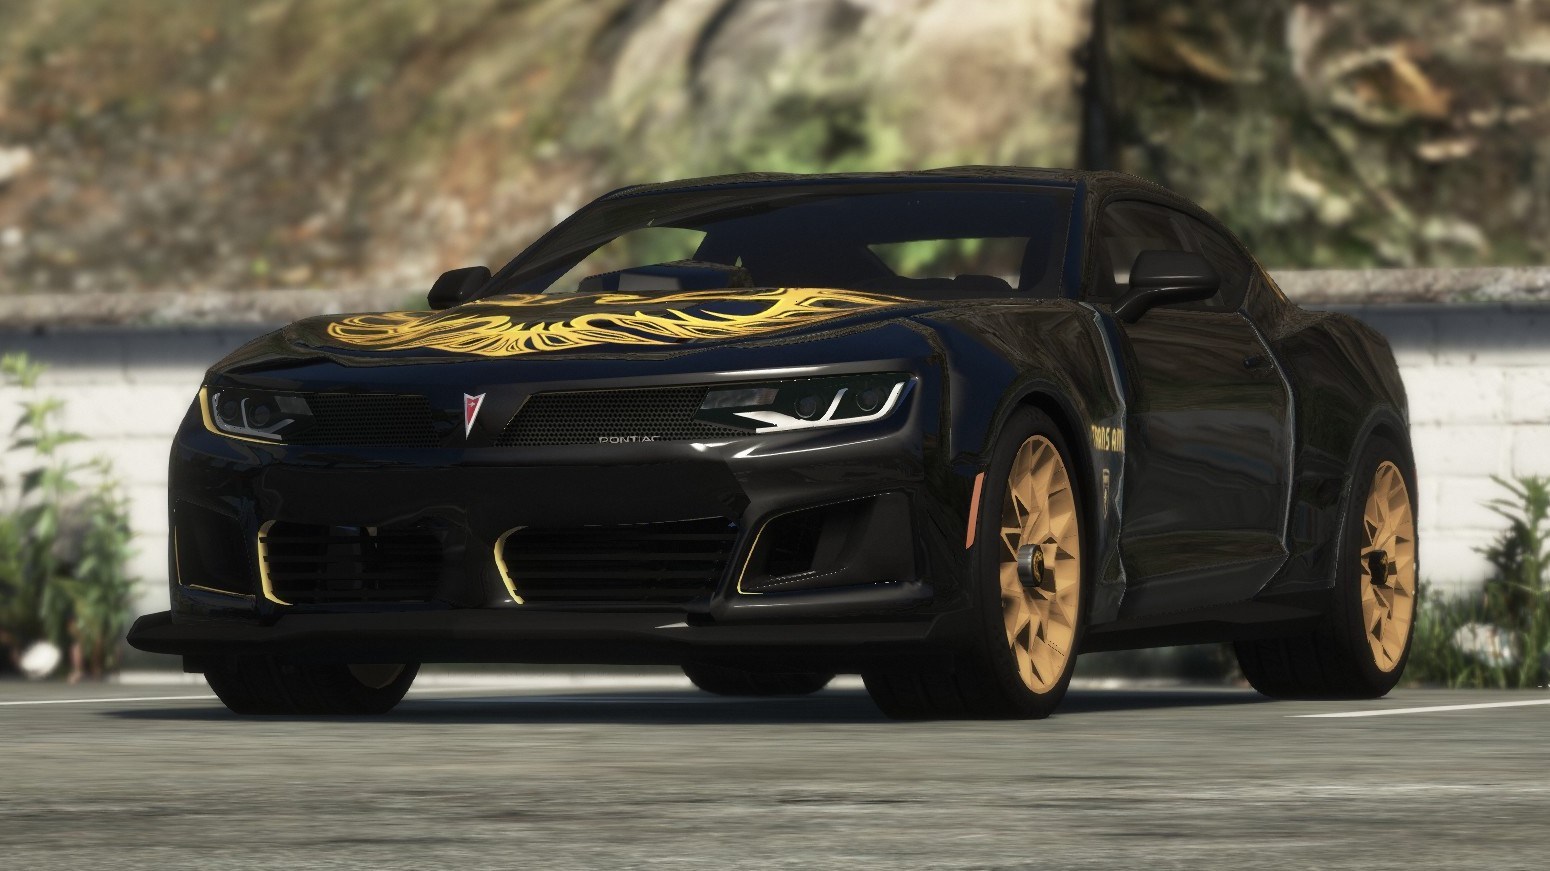 2018 Pontiac Firebird Trans Am [Add-On / Livery] - GTA5-Mods com